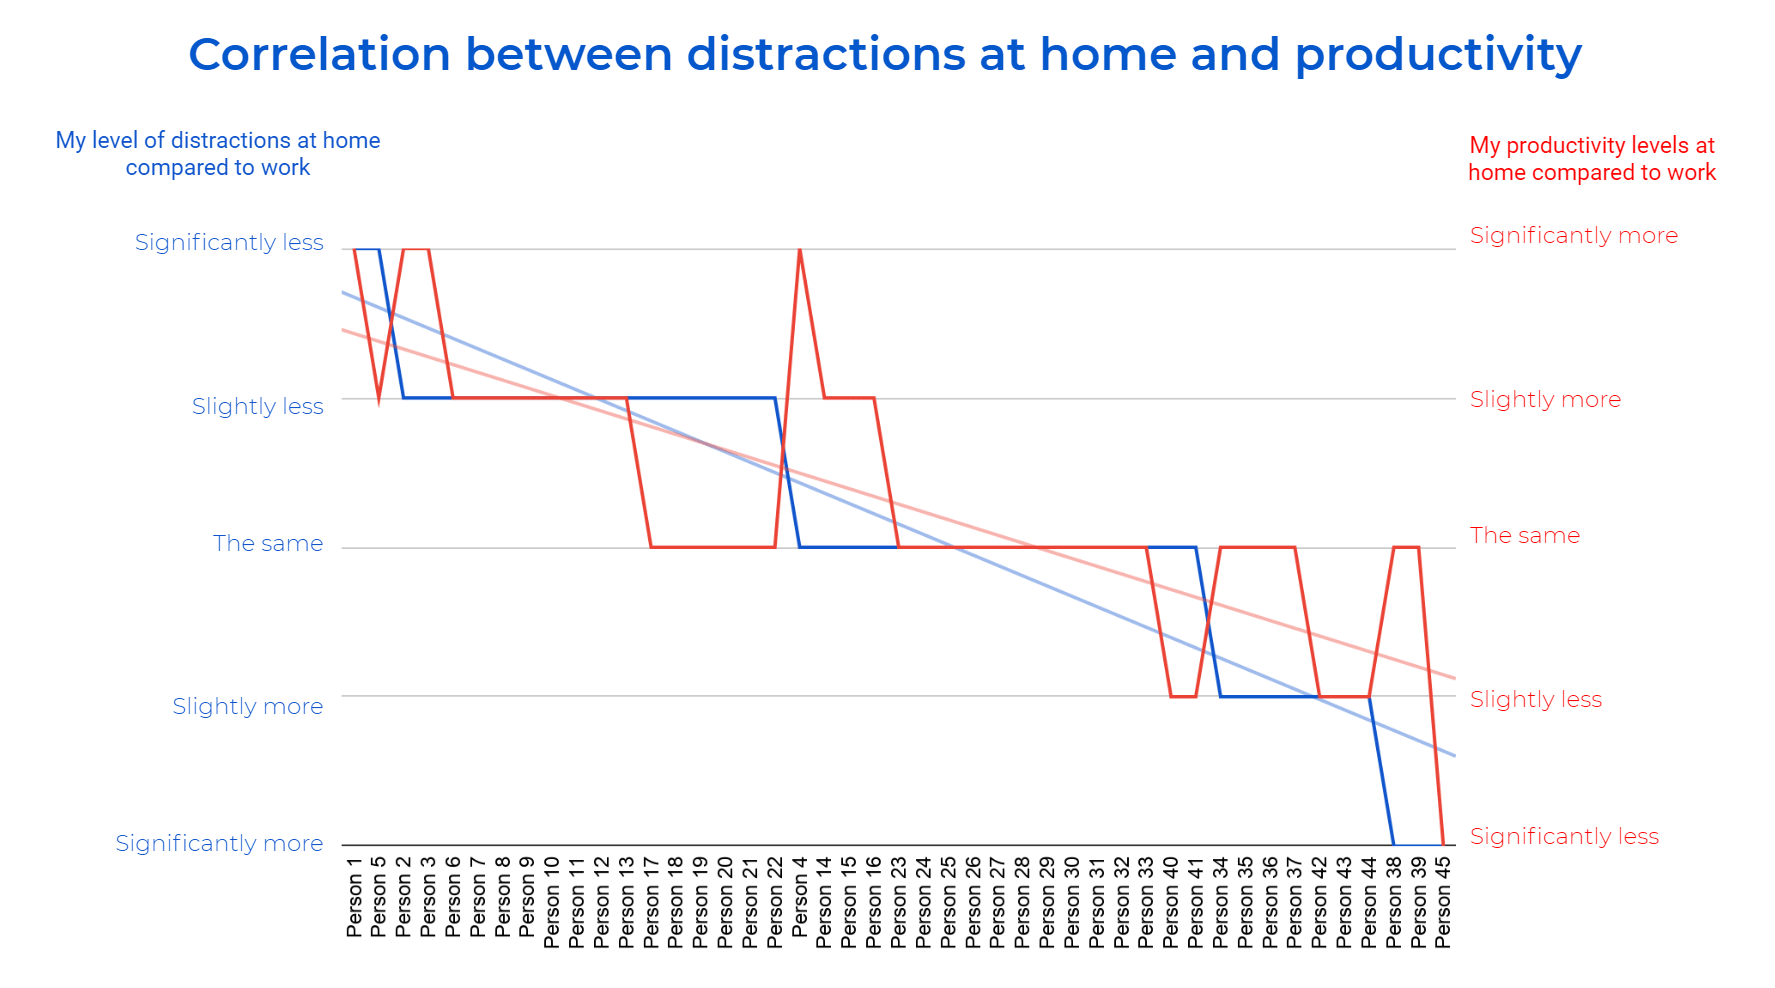 Correlations distractions at home and productivity